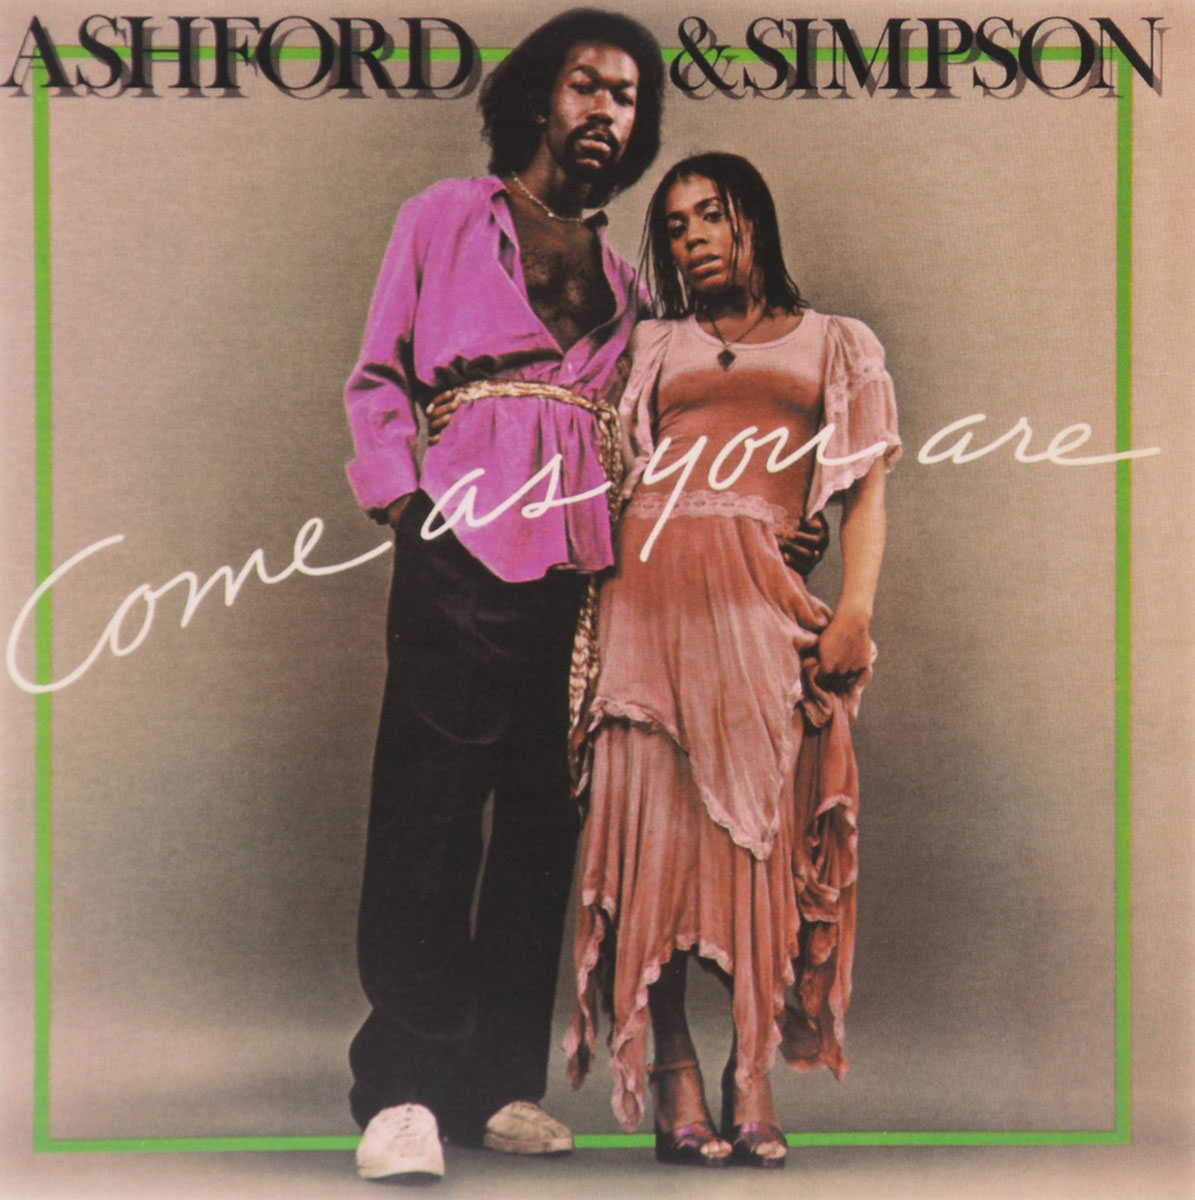 Ashford & Simpson Ashford & Simpson. Come As You Are ashford